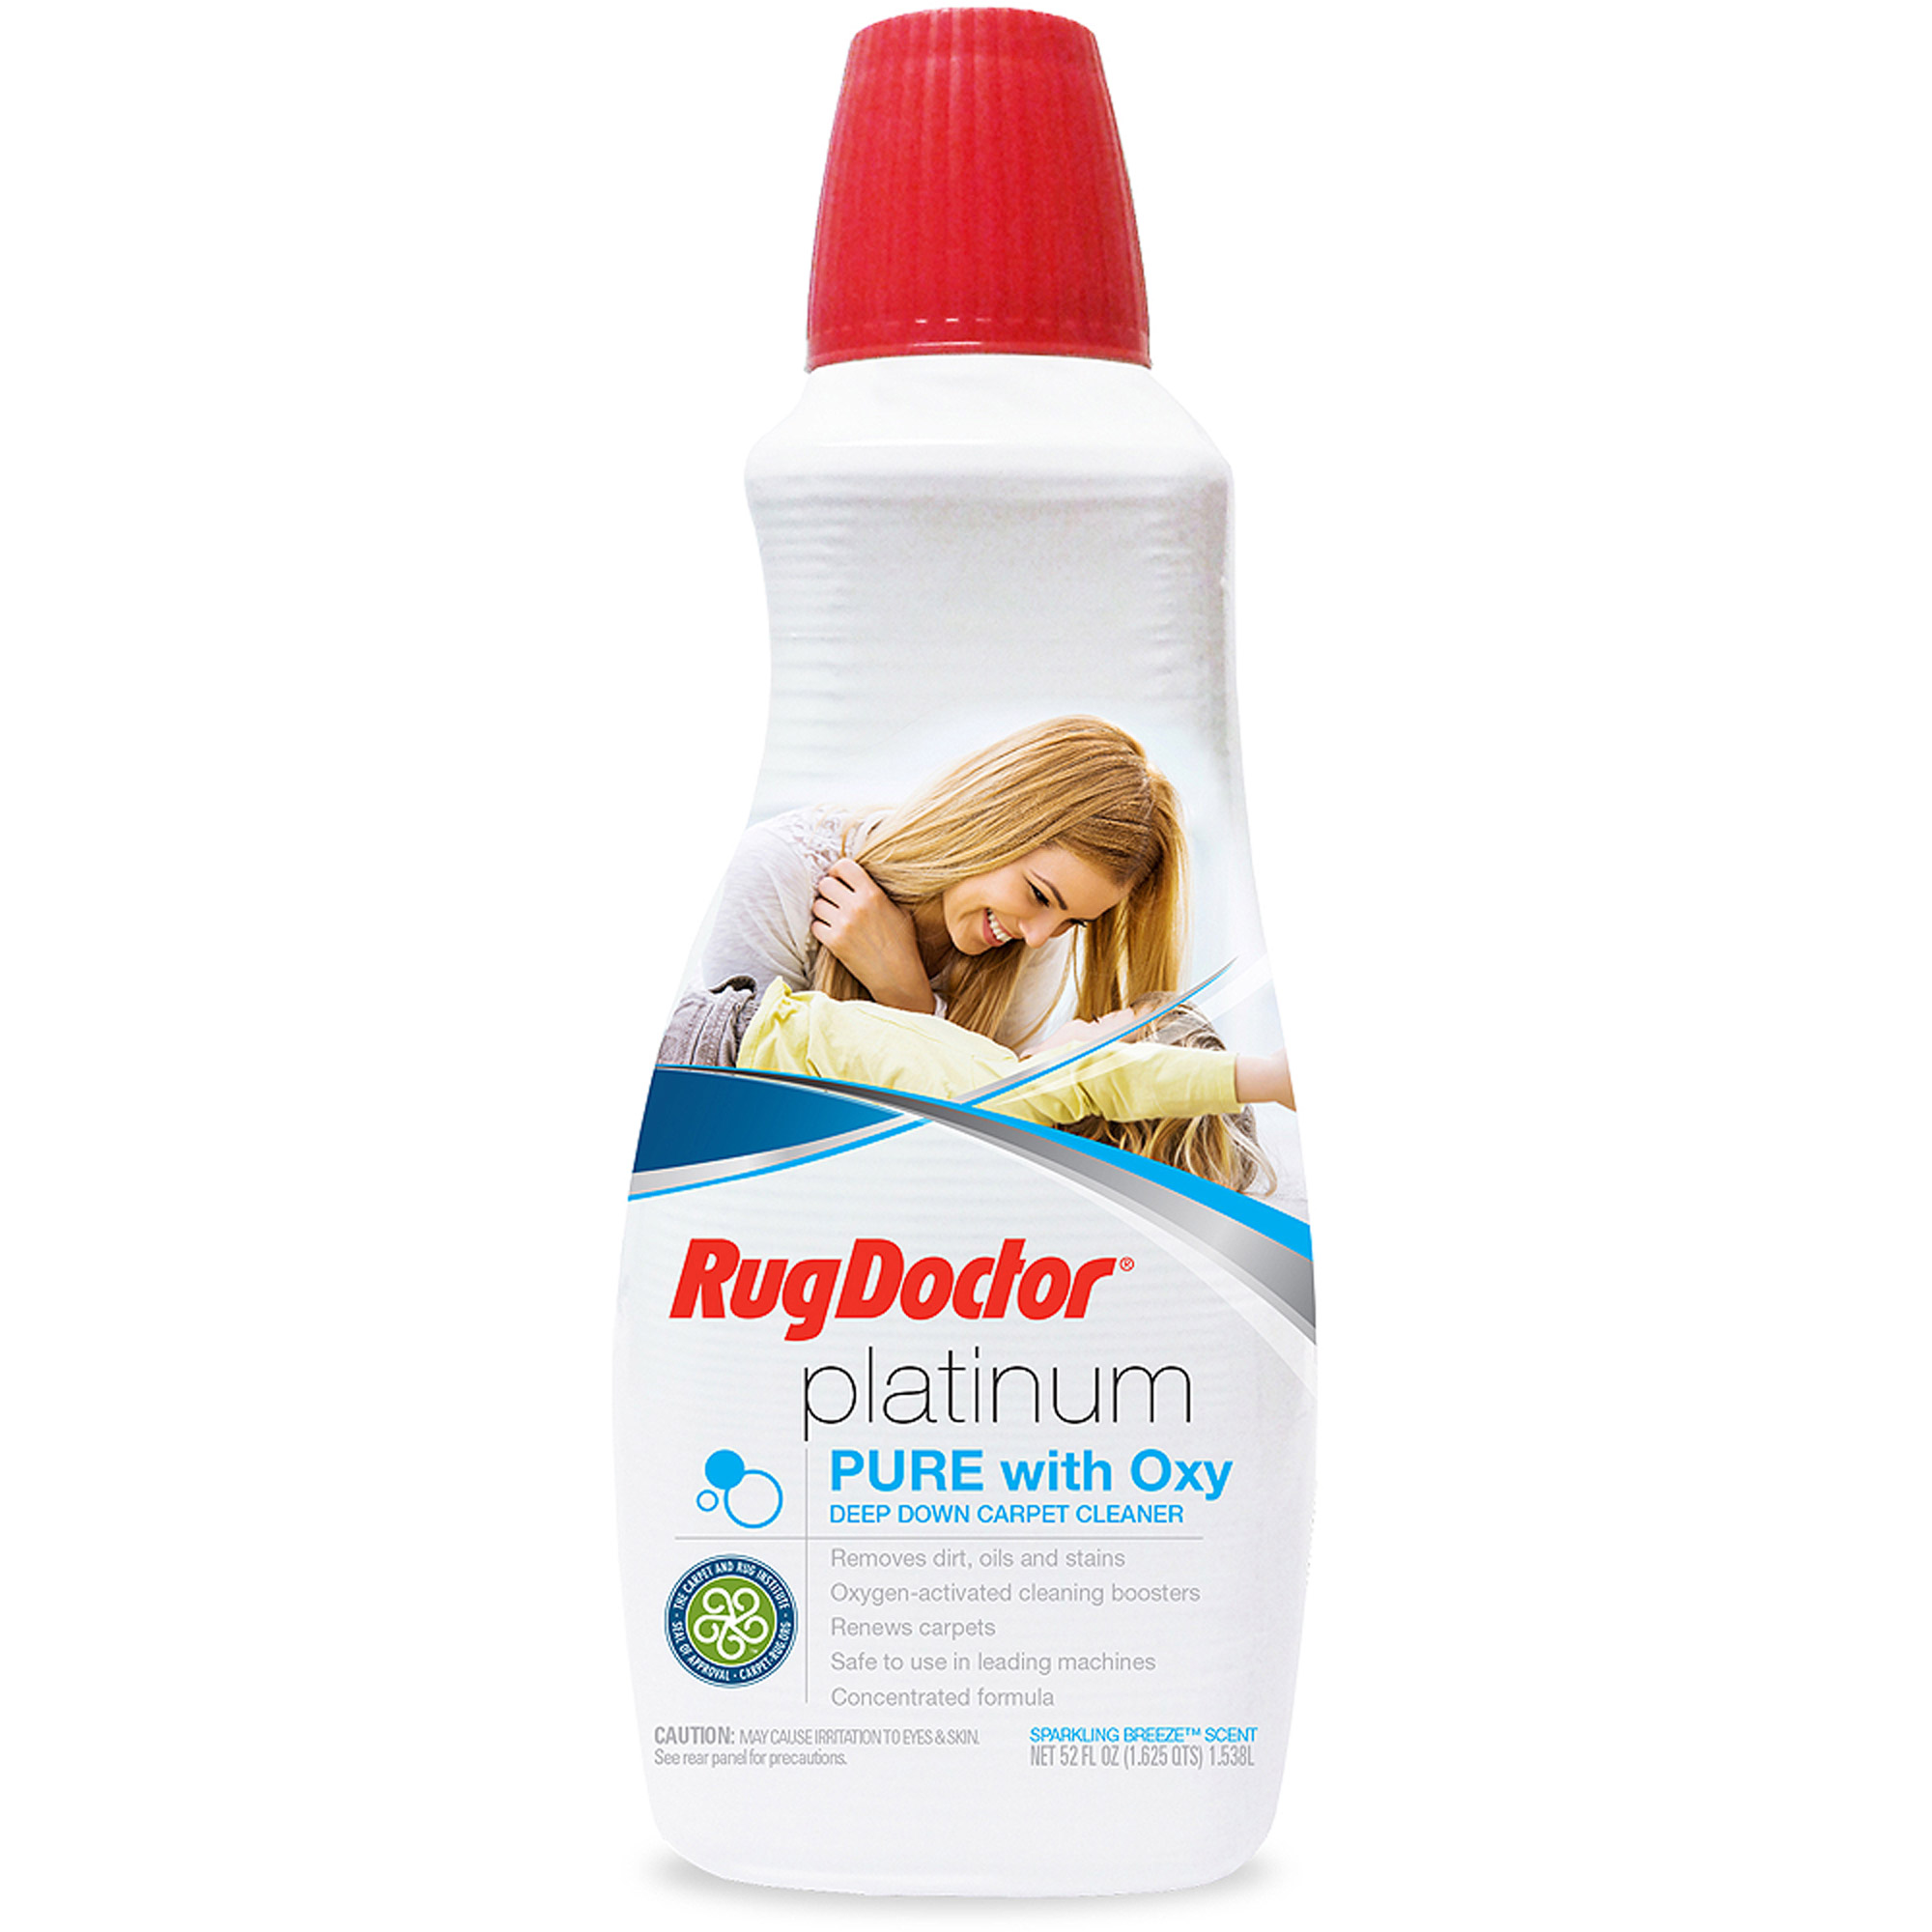 Rug Doctor Platinum Pure with Oxy Deep Down Carpet Cleaner, 52-oz bottle